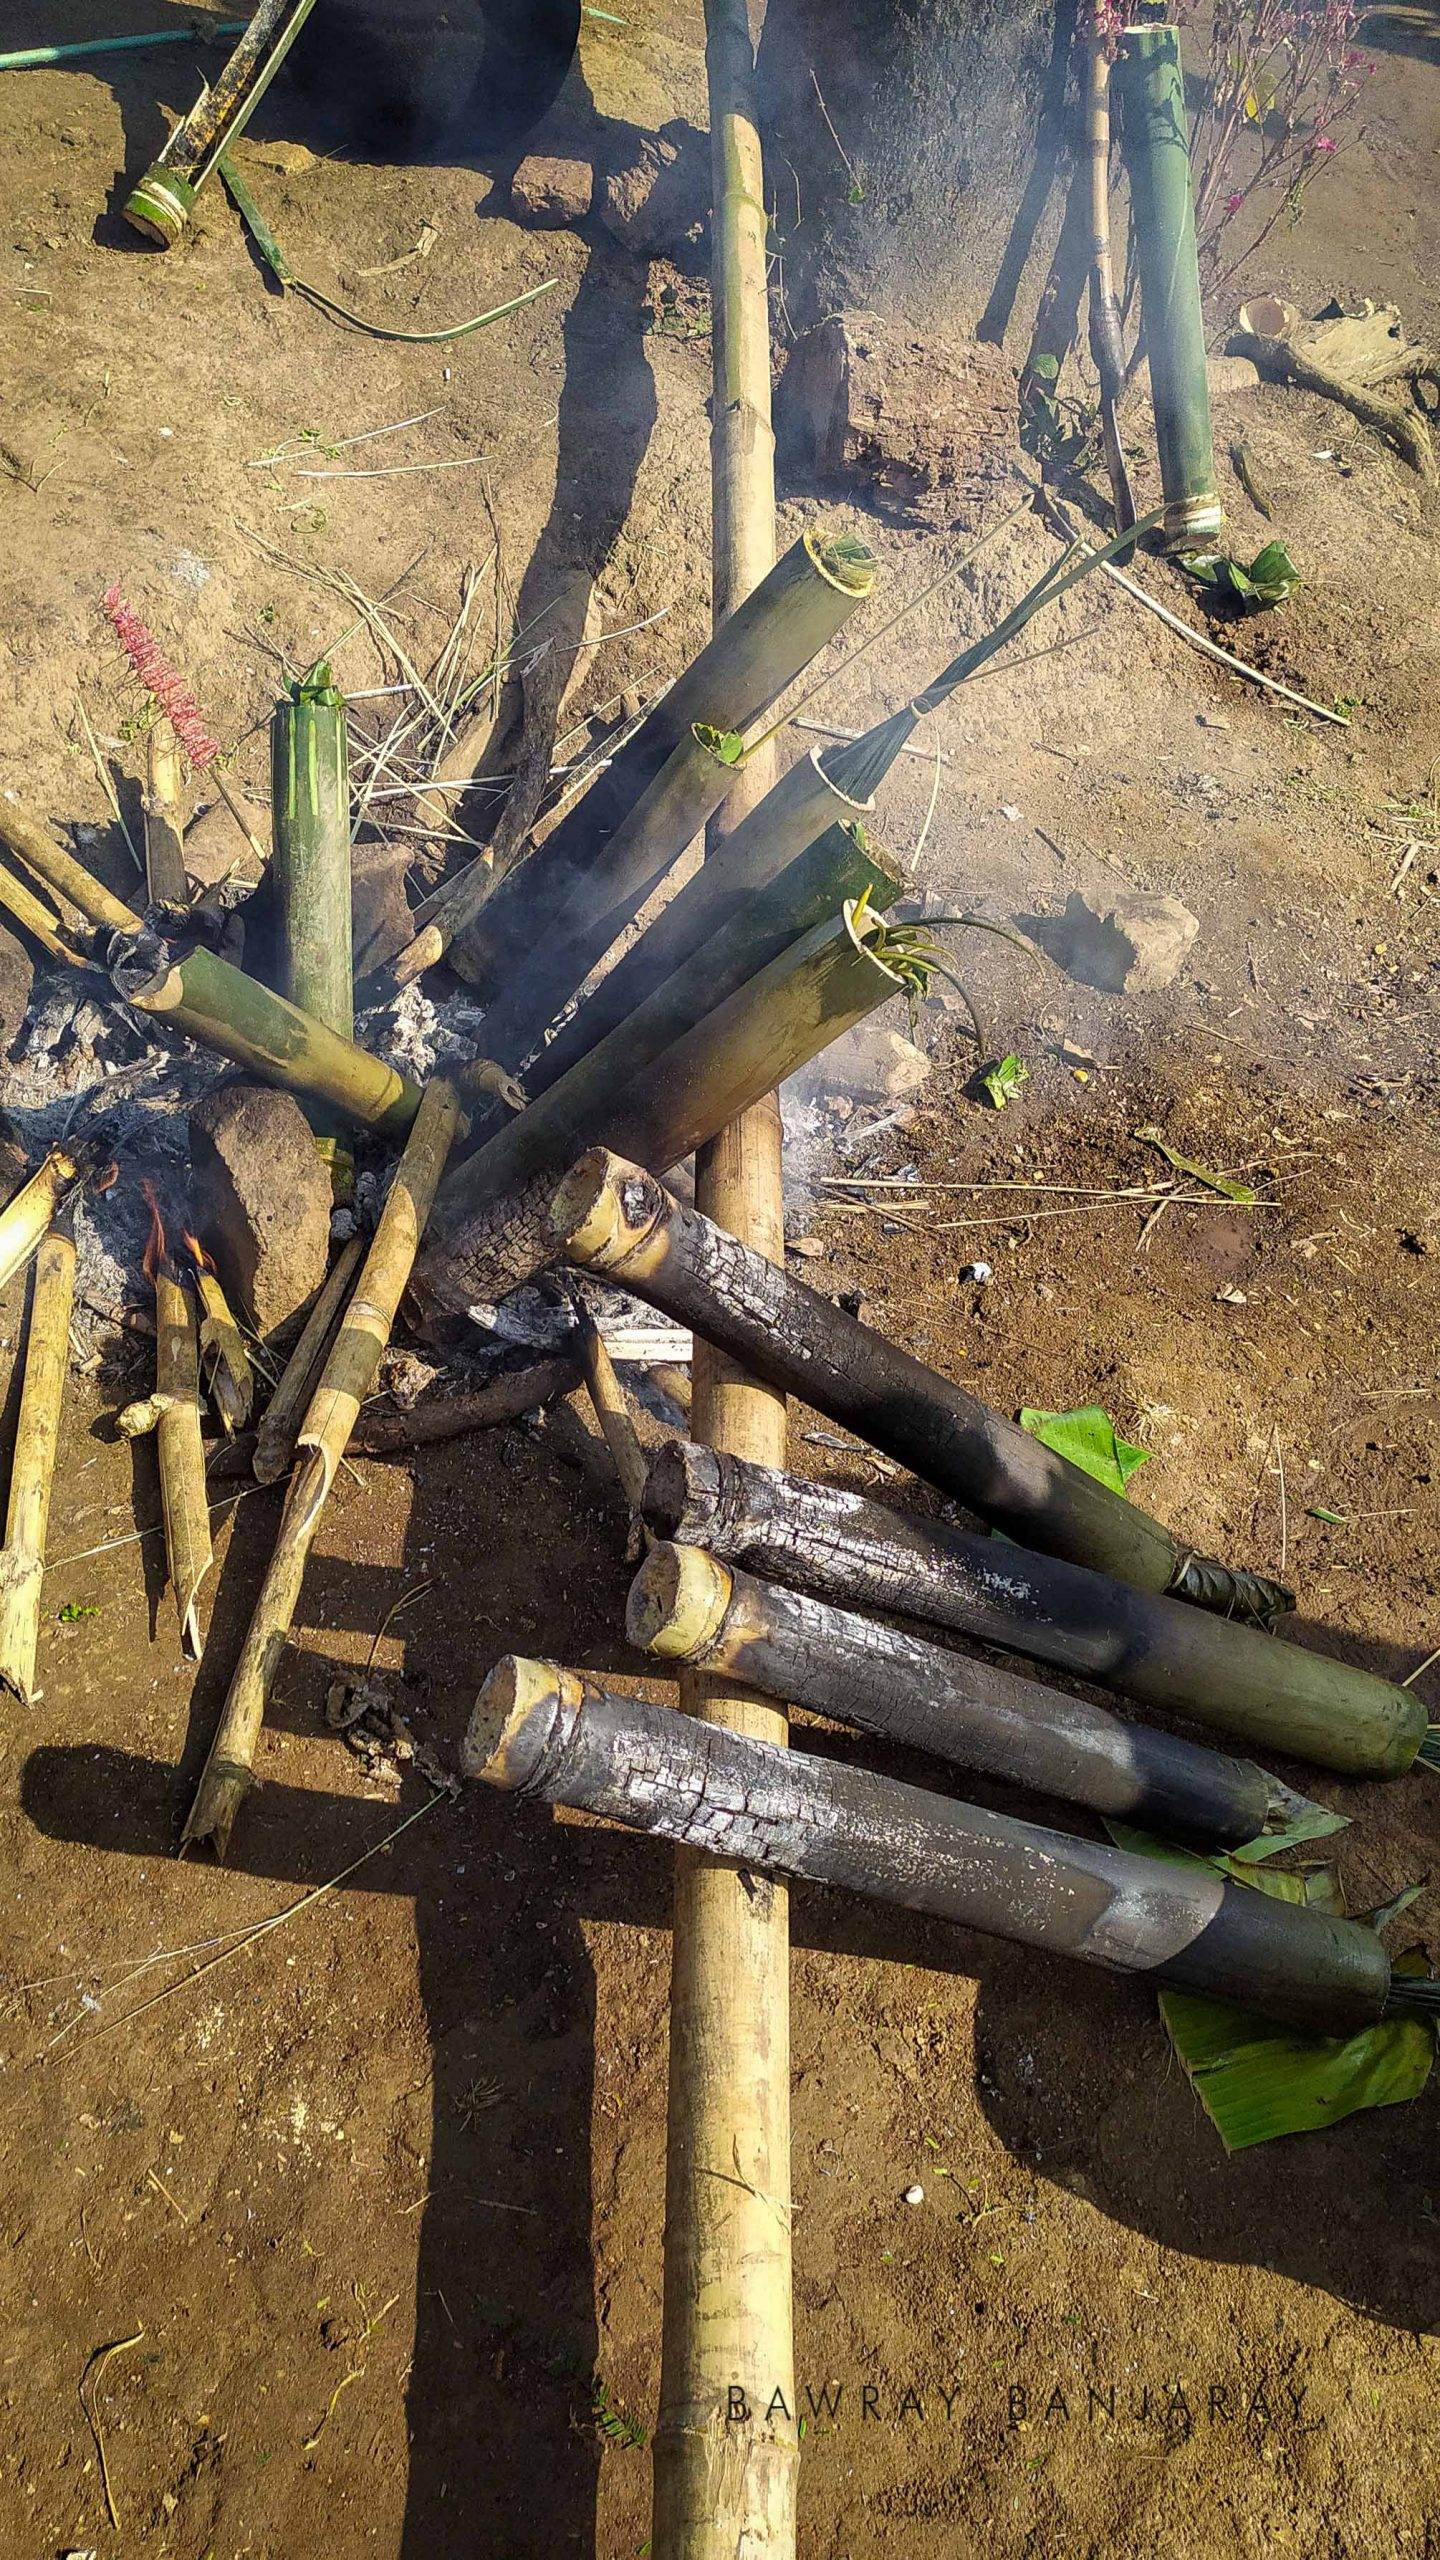 The Tiwa Tribe of Bodoland uses bamboo in cooking food